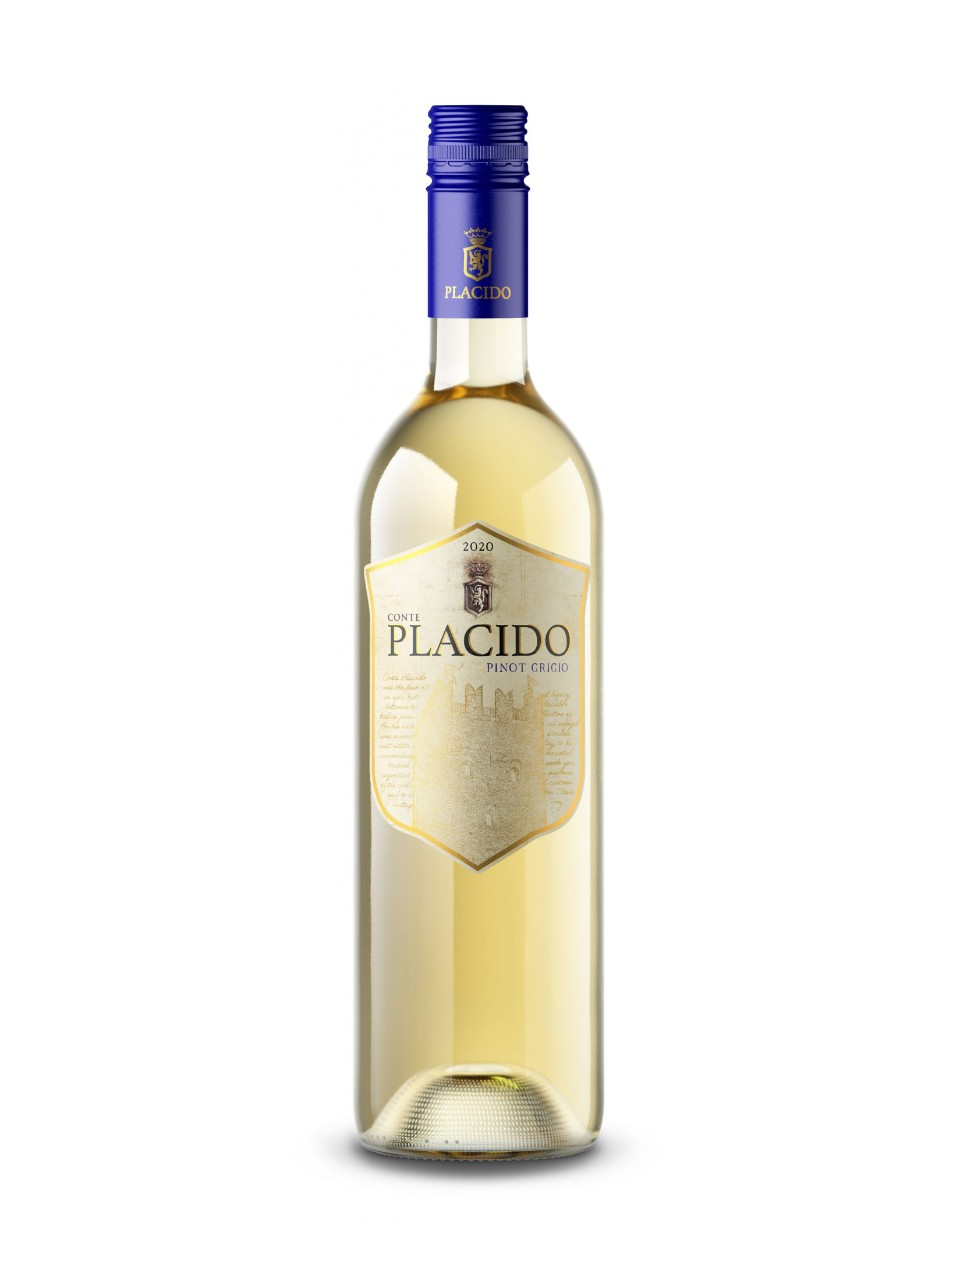 Image for Placido Pinot Grigio Toscana IGT from LCBO